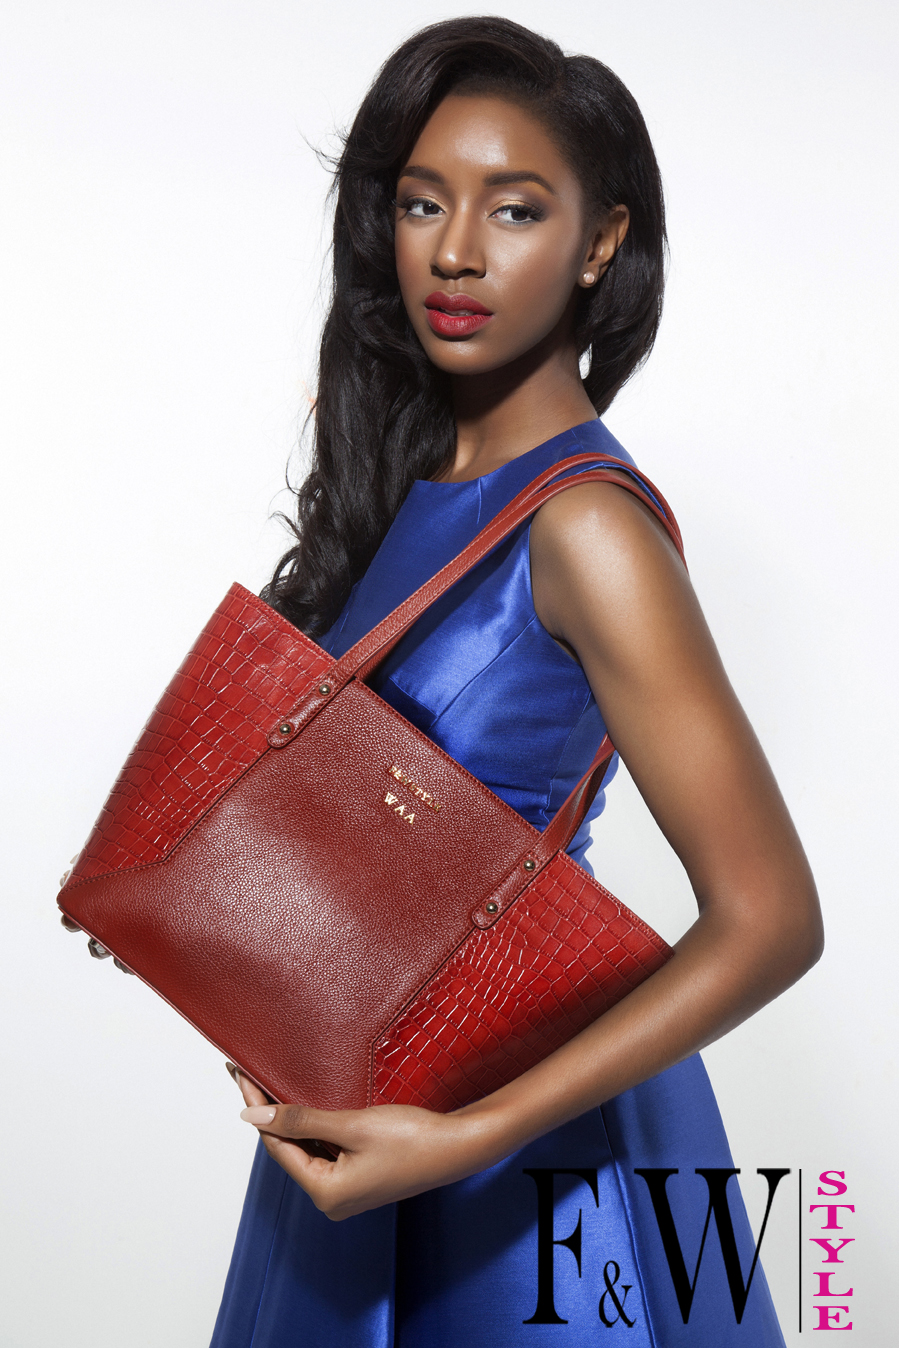 Cool Product: F&W Style Luxury Leather Handbags